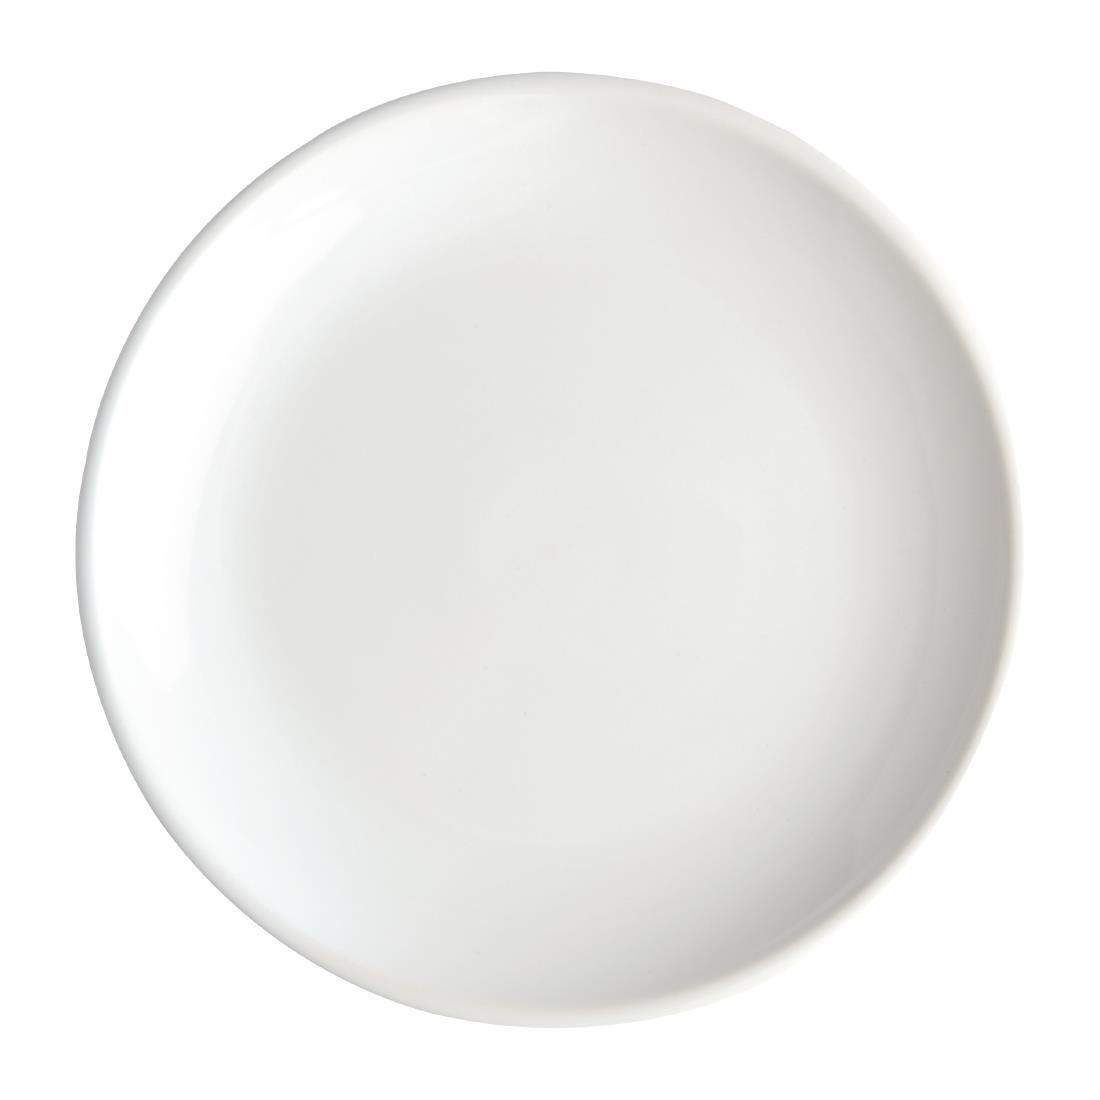 Olympia Cafe Coupe Plate White 205mm